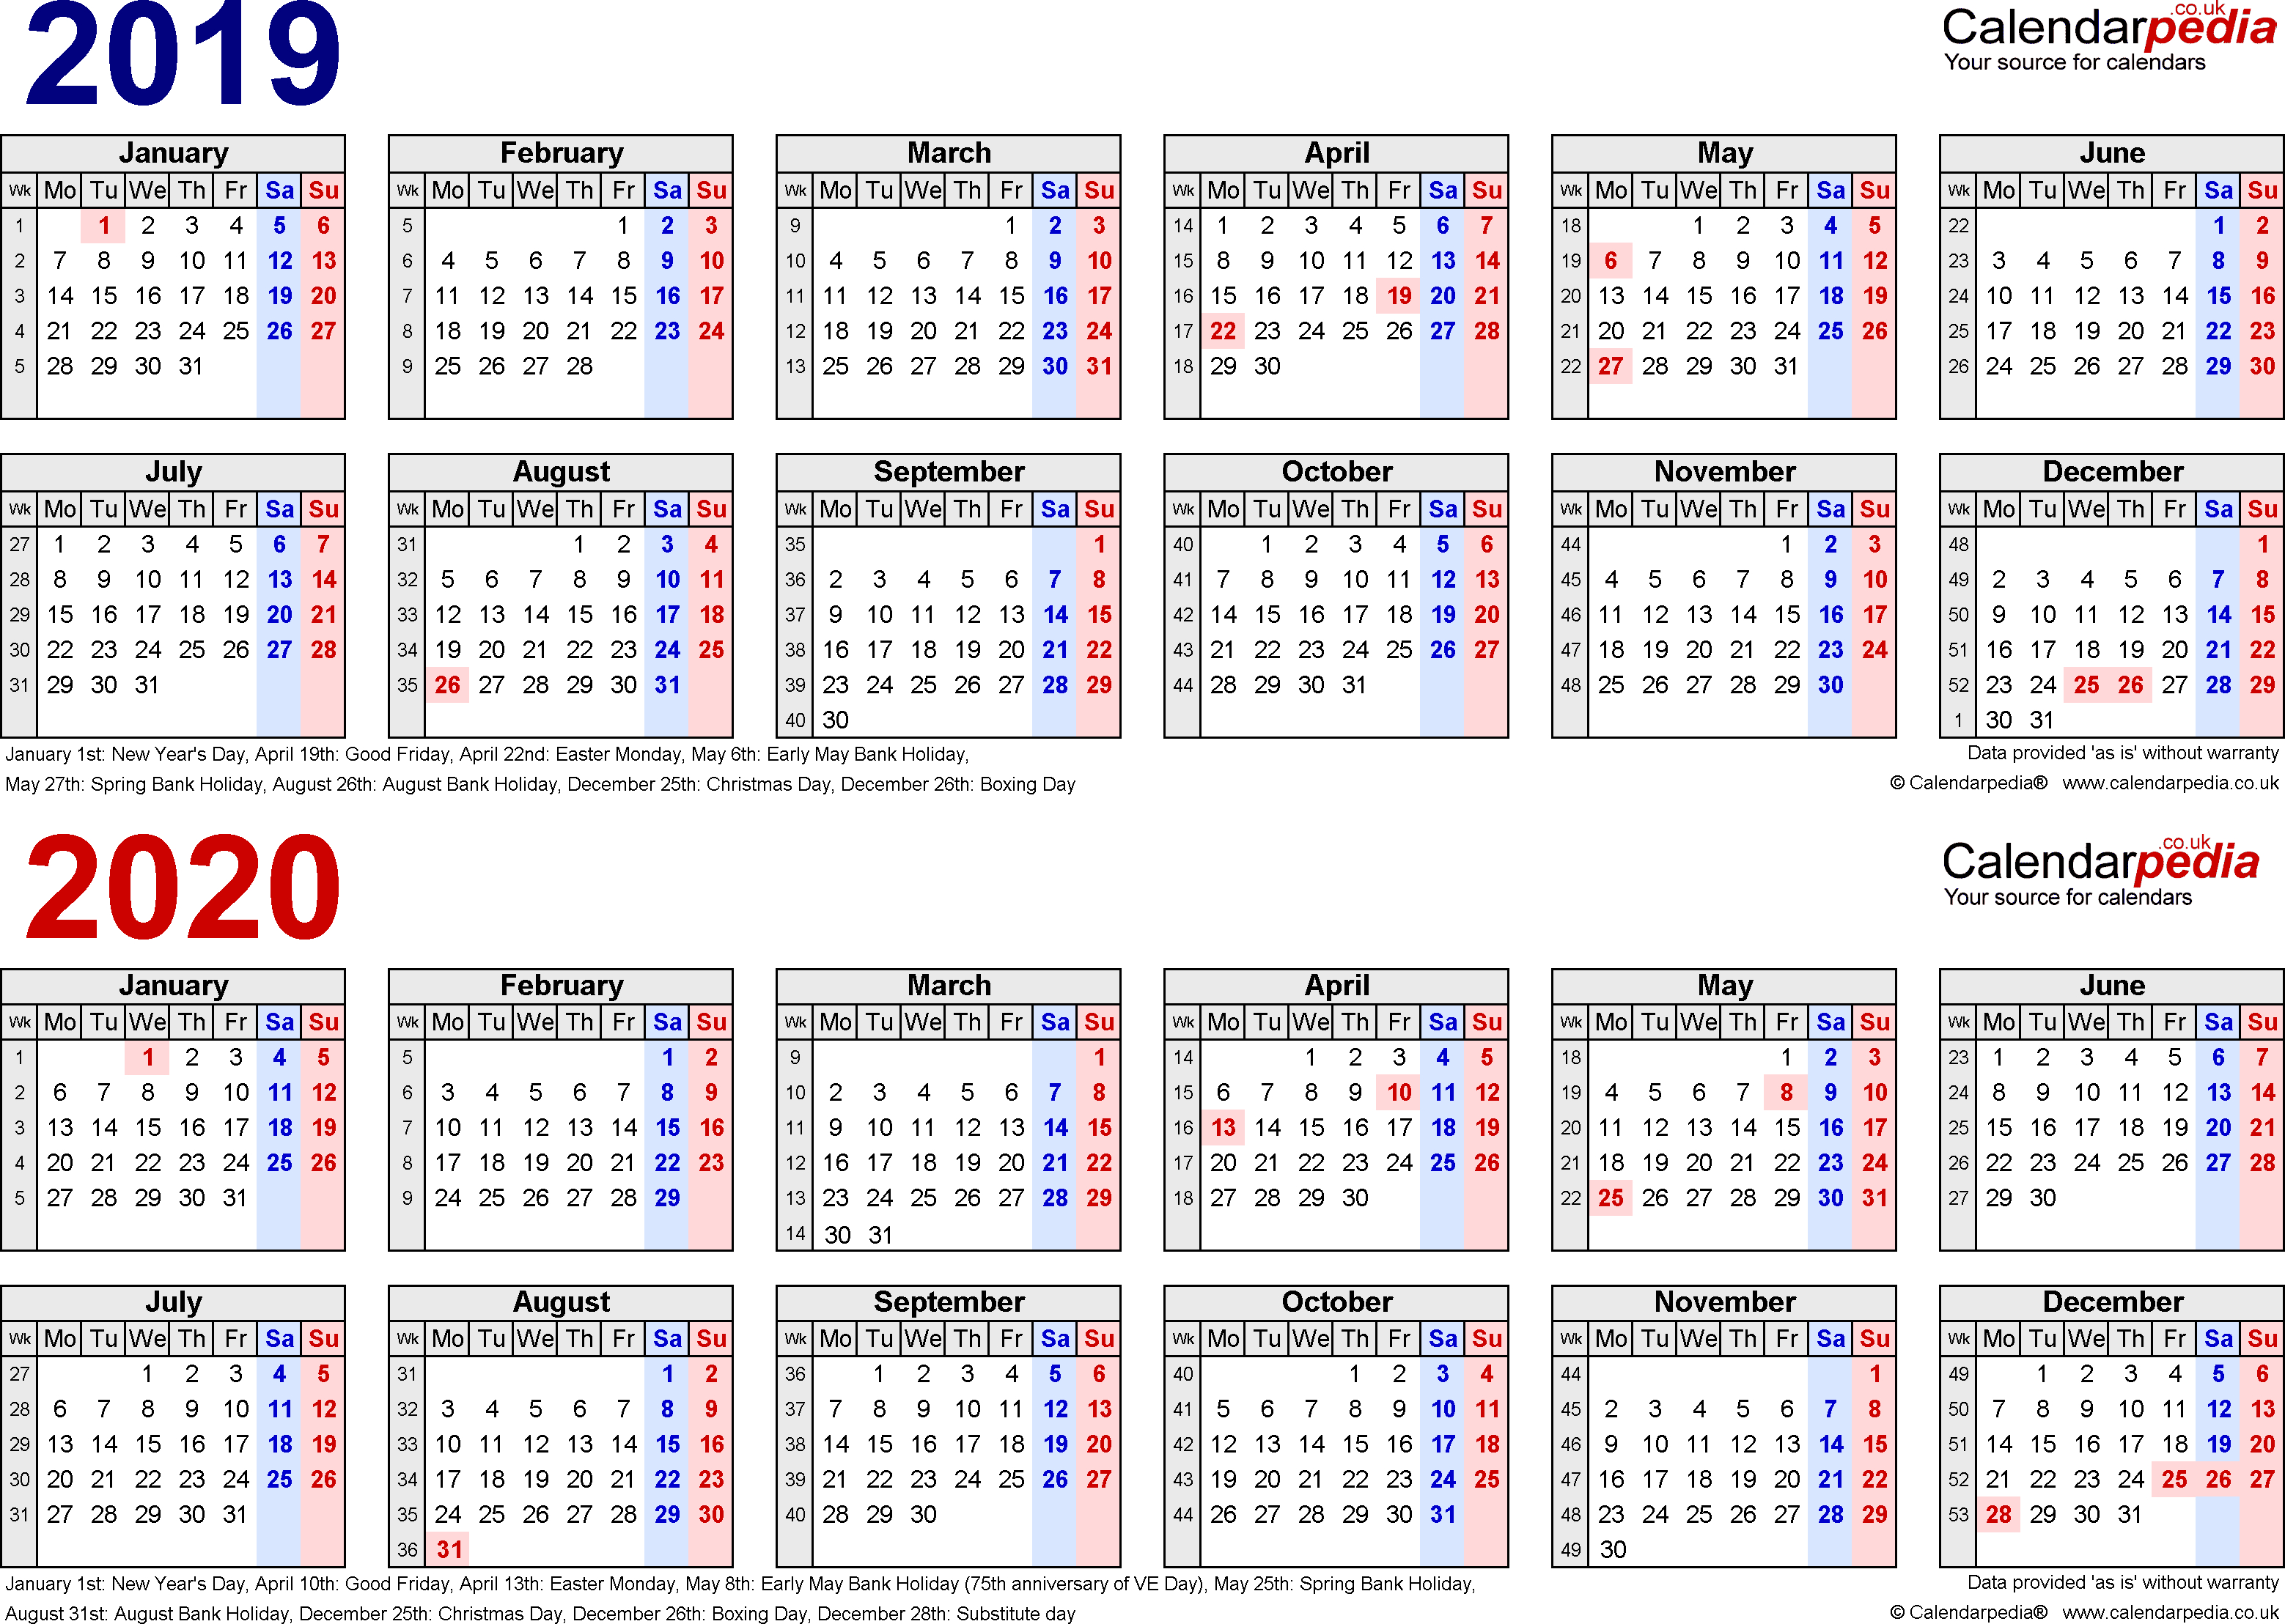 Two Year Calendars For 2019 & 2020 (Uk) For Pdf with regard to Year Long Calendar For 2019-2020 Printable